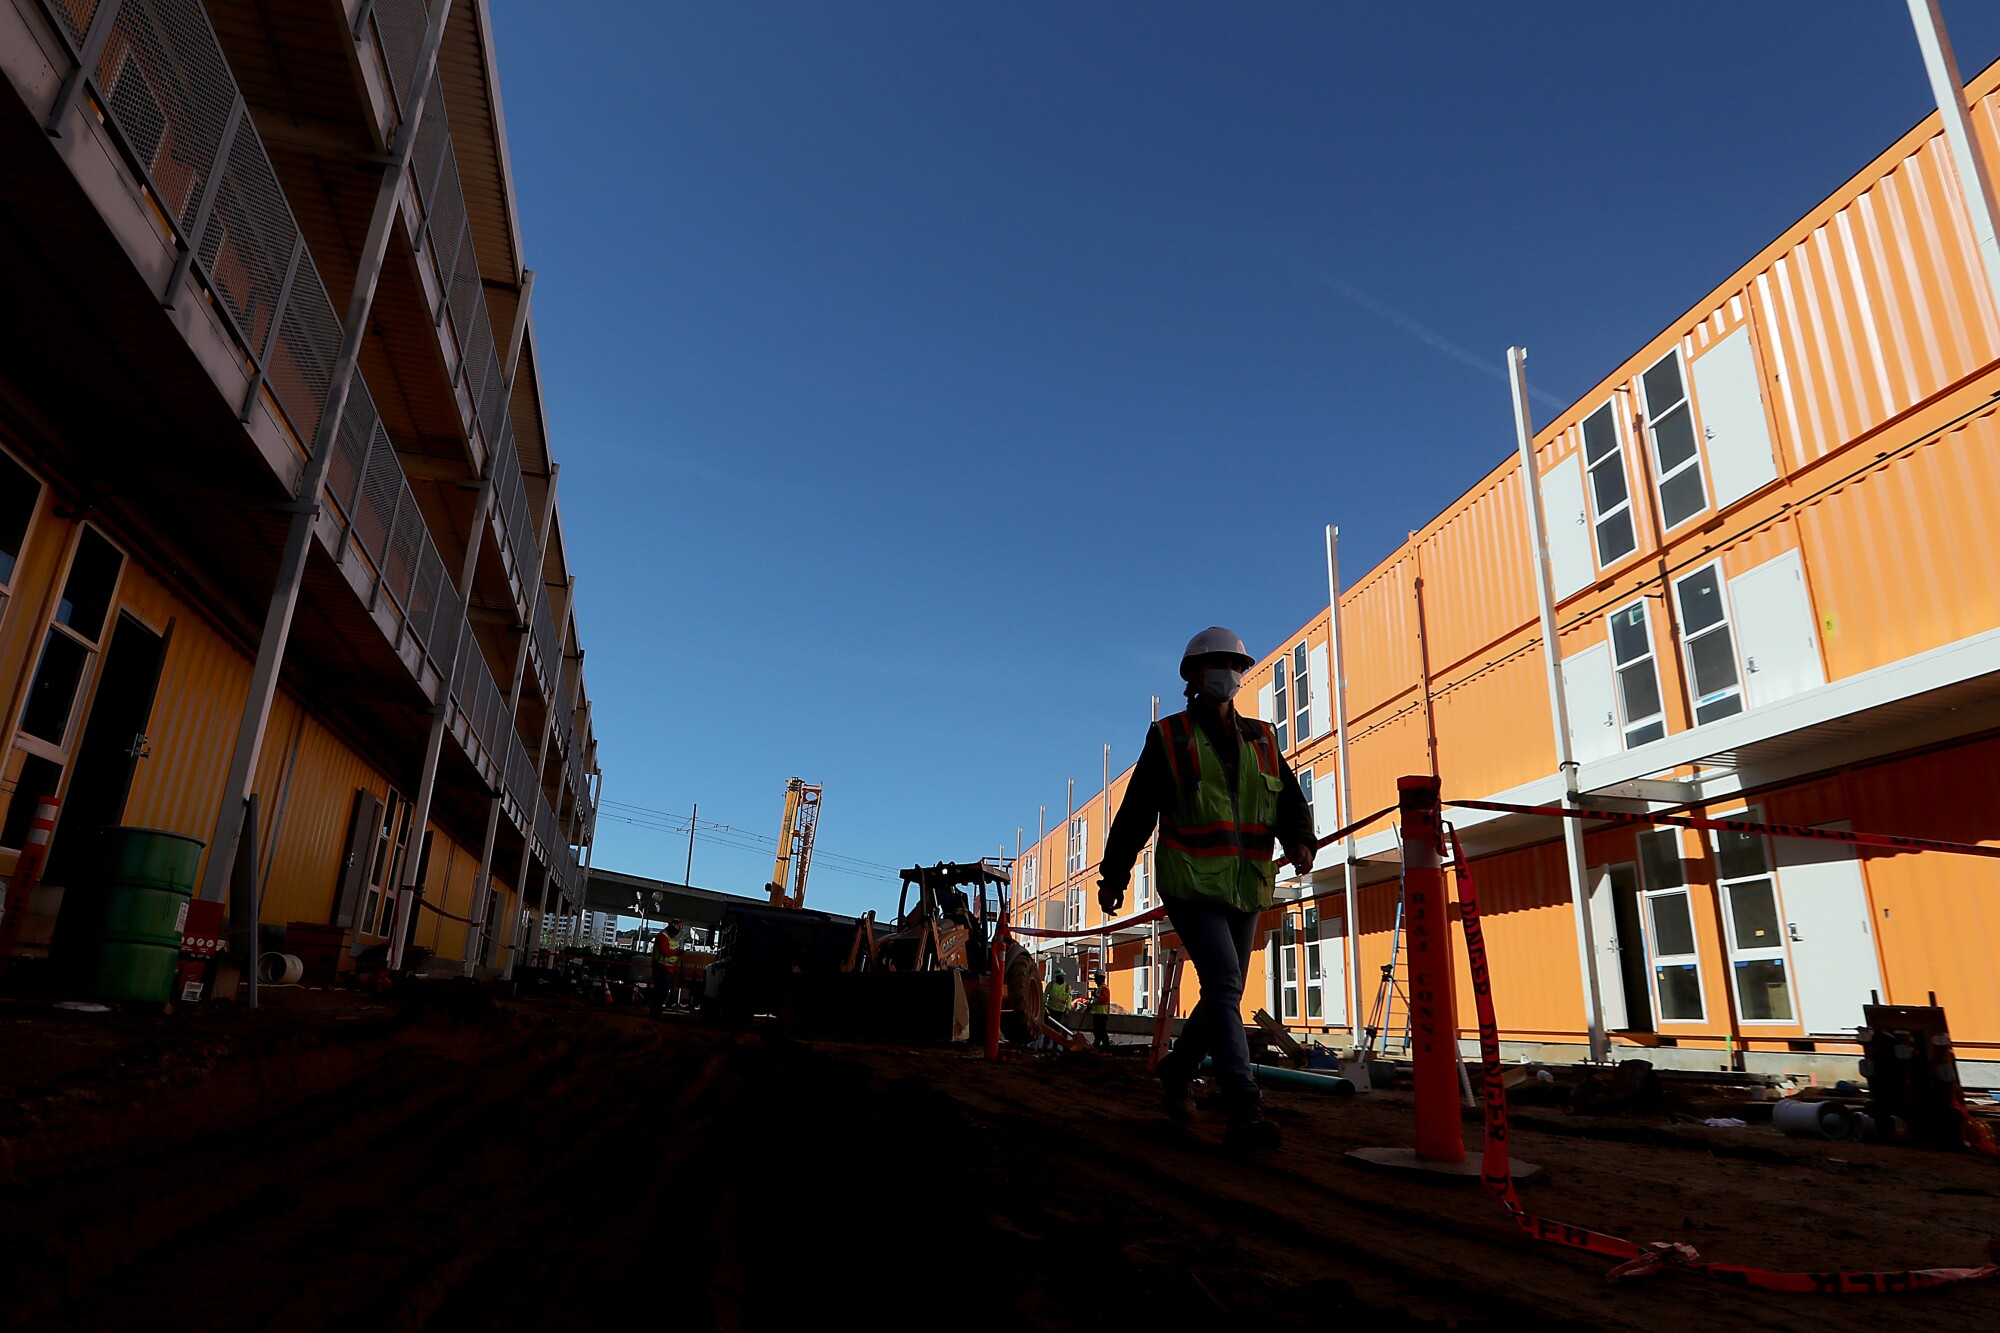 A worker in a hard hat and high-visibility vest walks in between housing built from shipping containers.